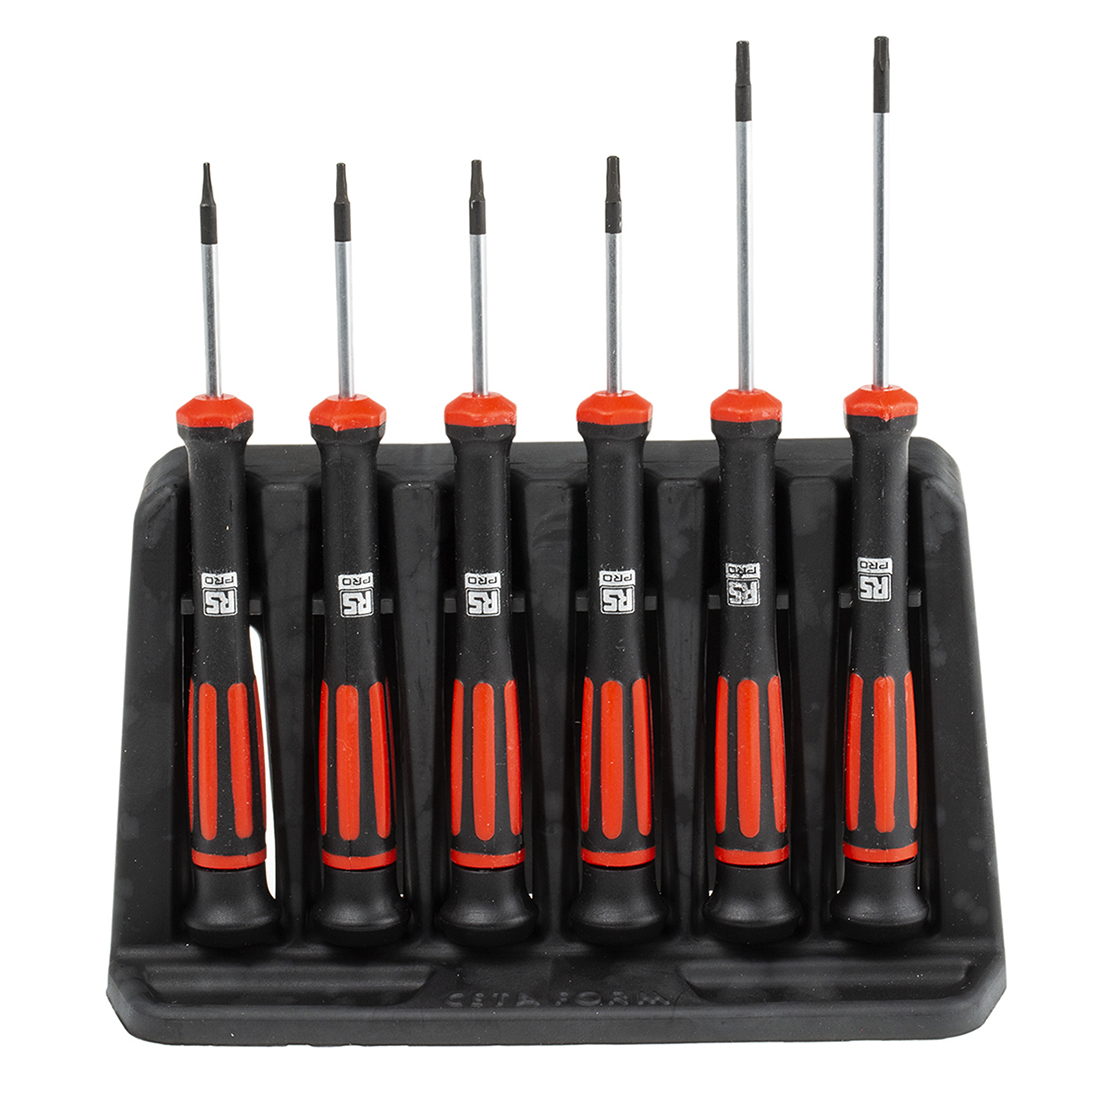 RS PRO Precision Phillips, Slotted Screwdriver Set 6 Piece